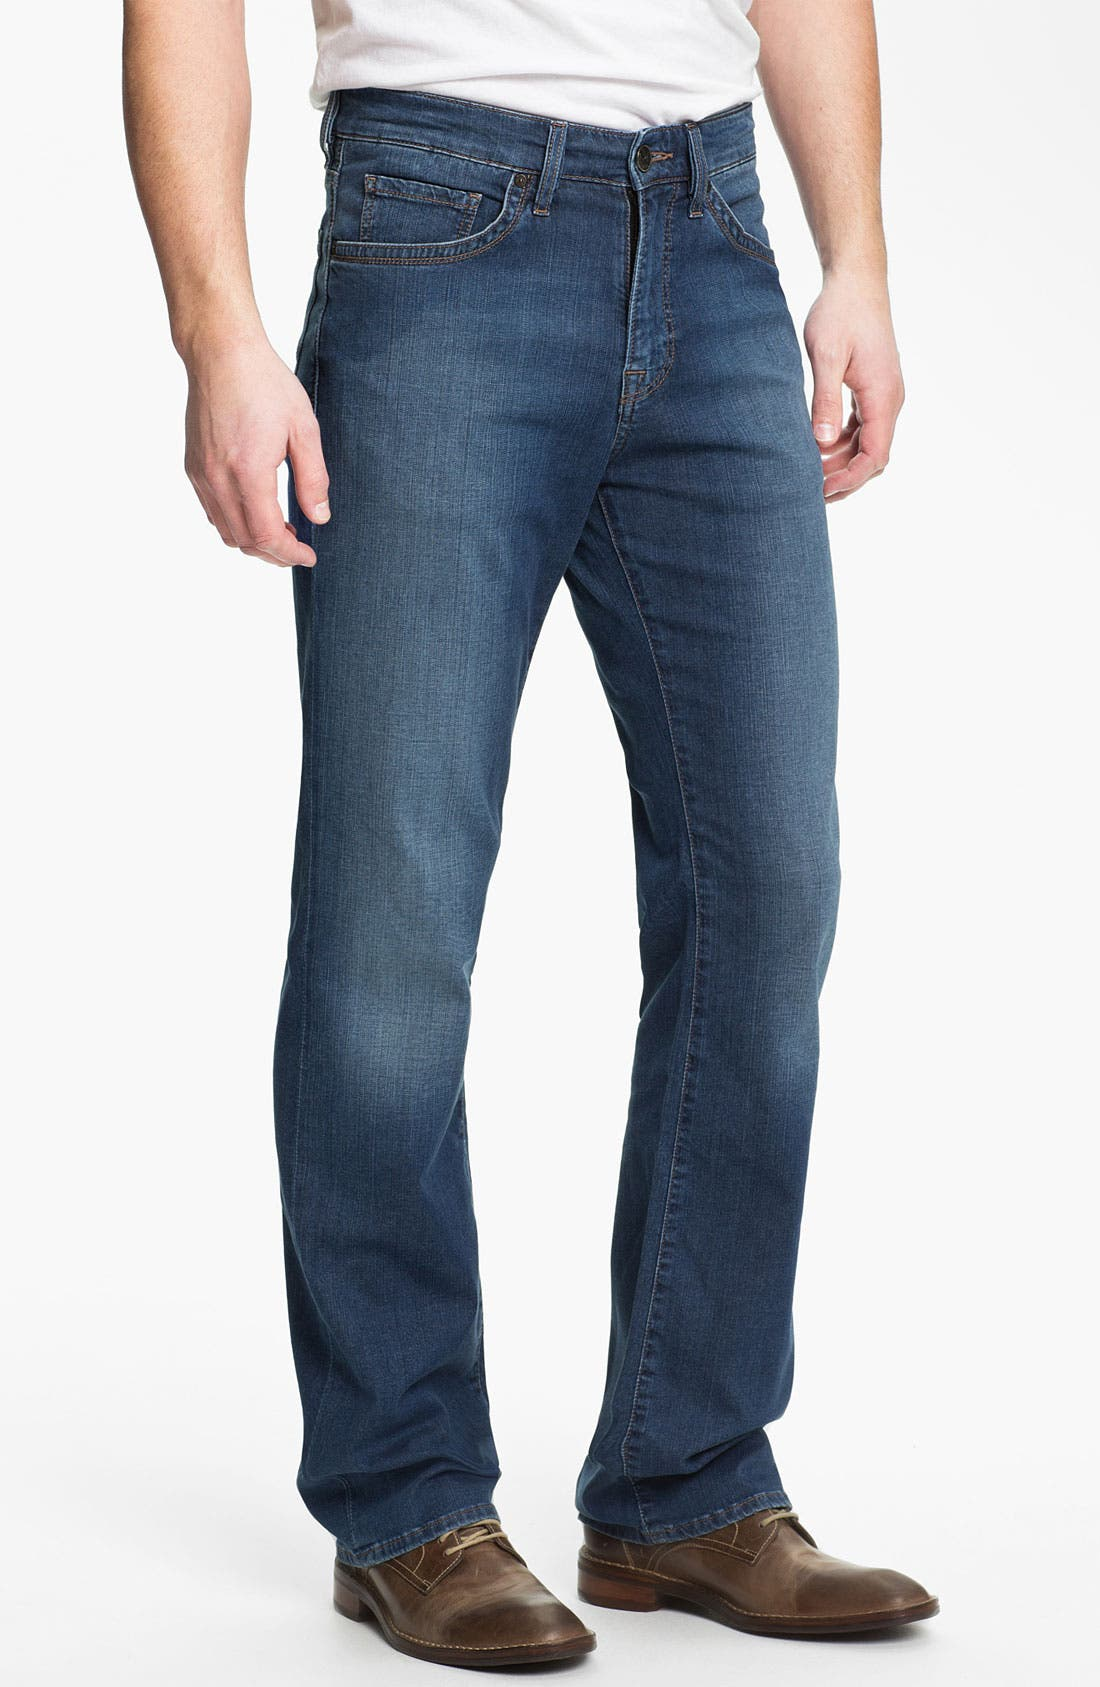 Alternate Image 1 Selected - 34 Heritage 'Confidence' Relaxed Leg Jeans (Mid Cashmere) (Online Only)